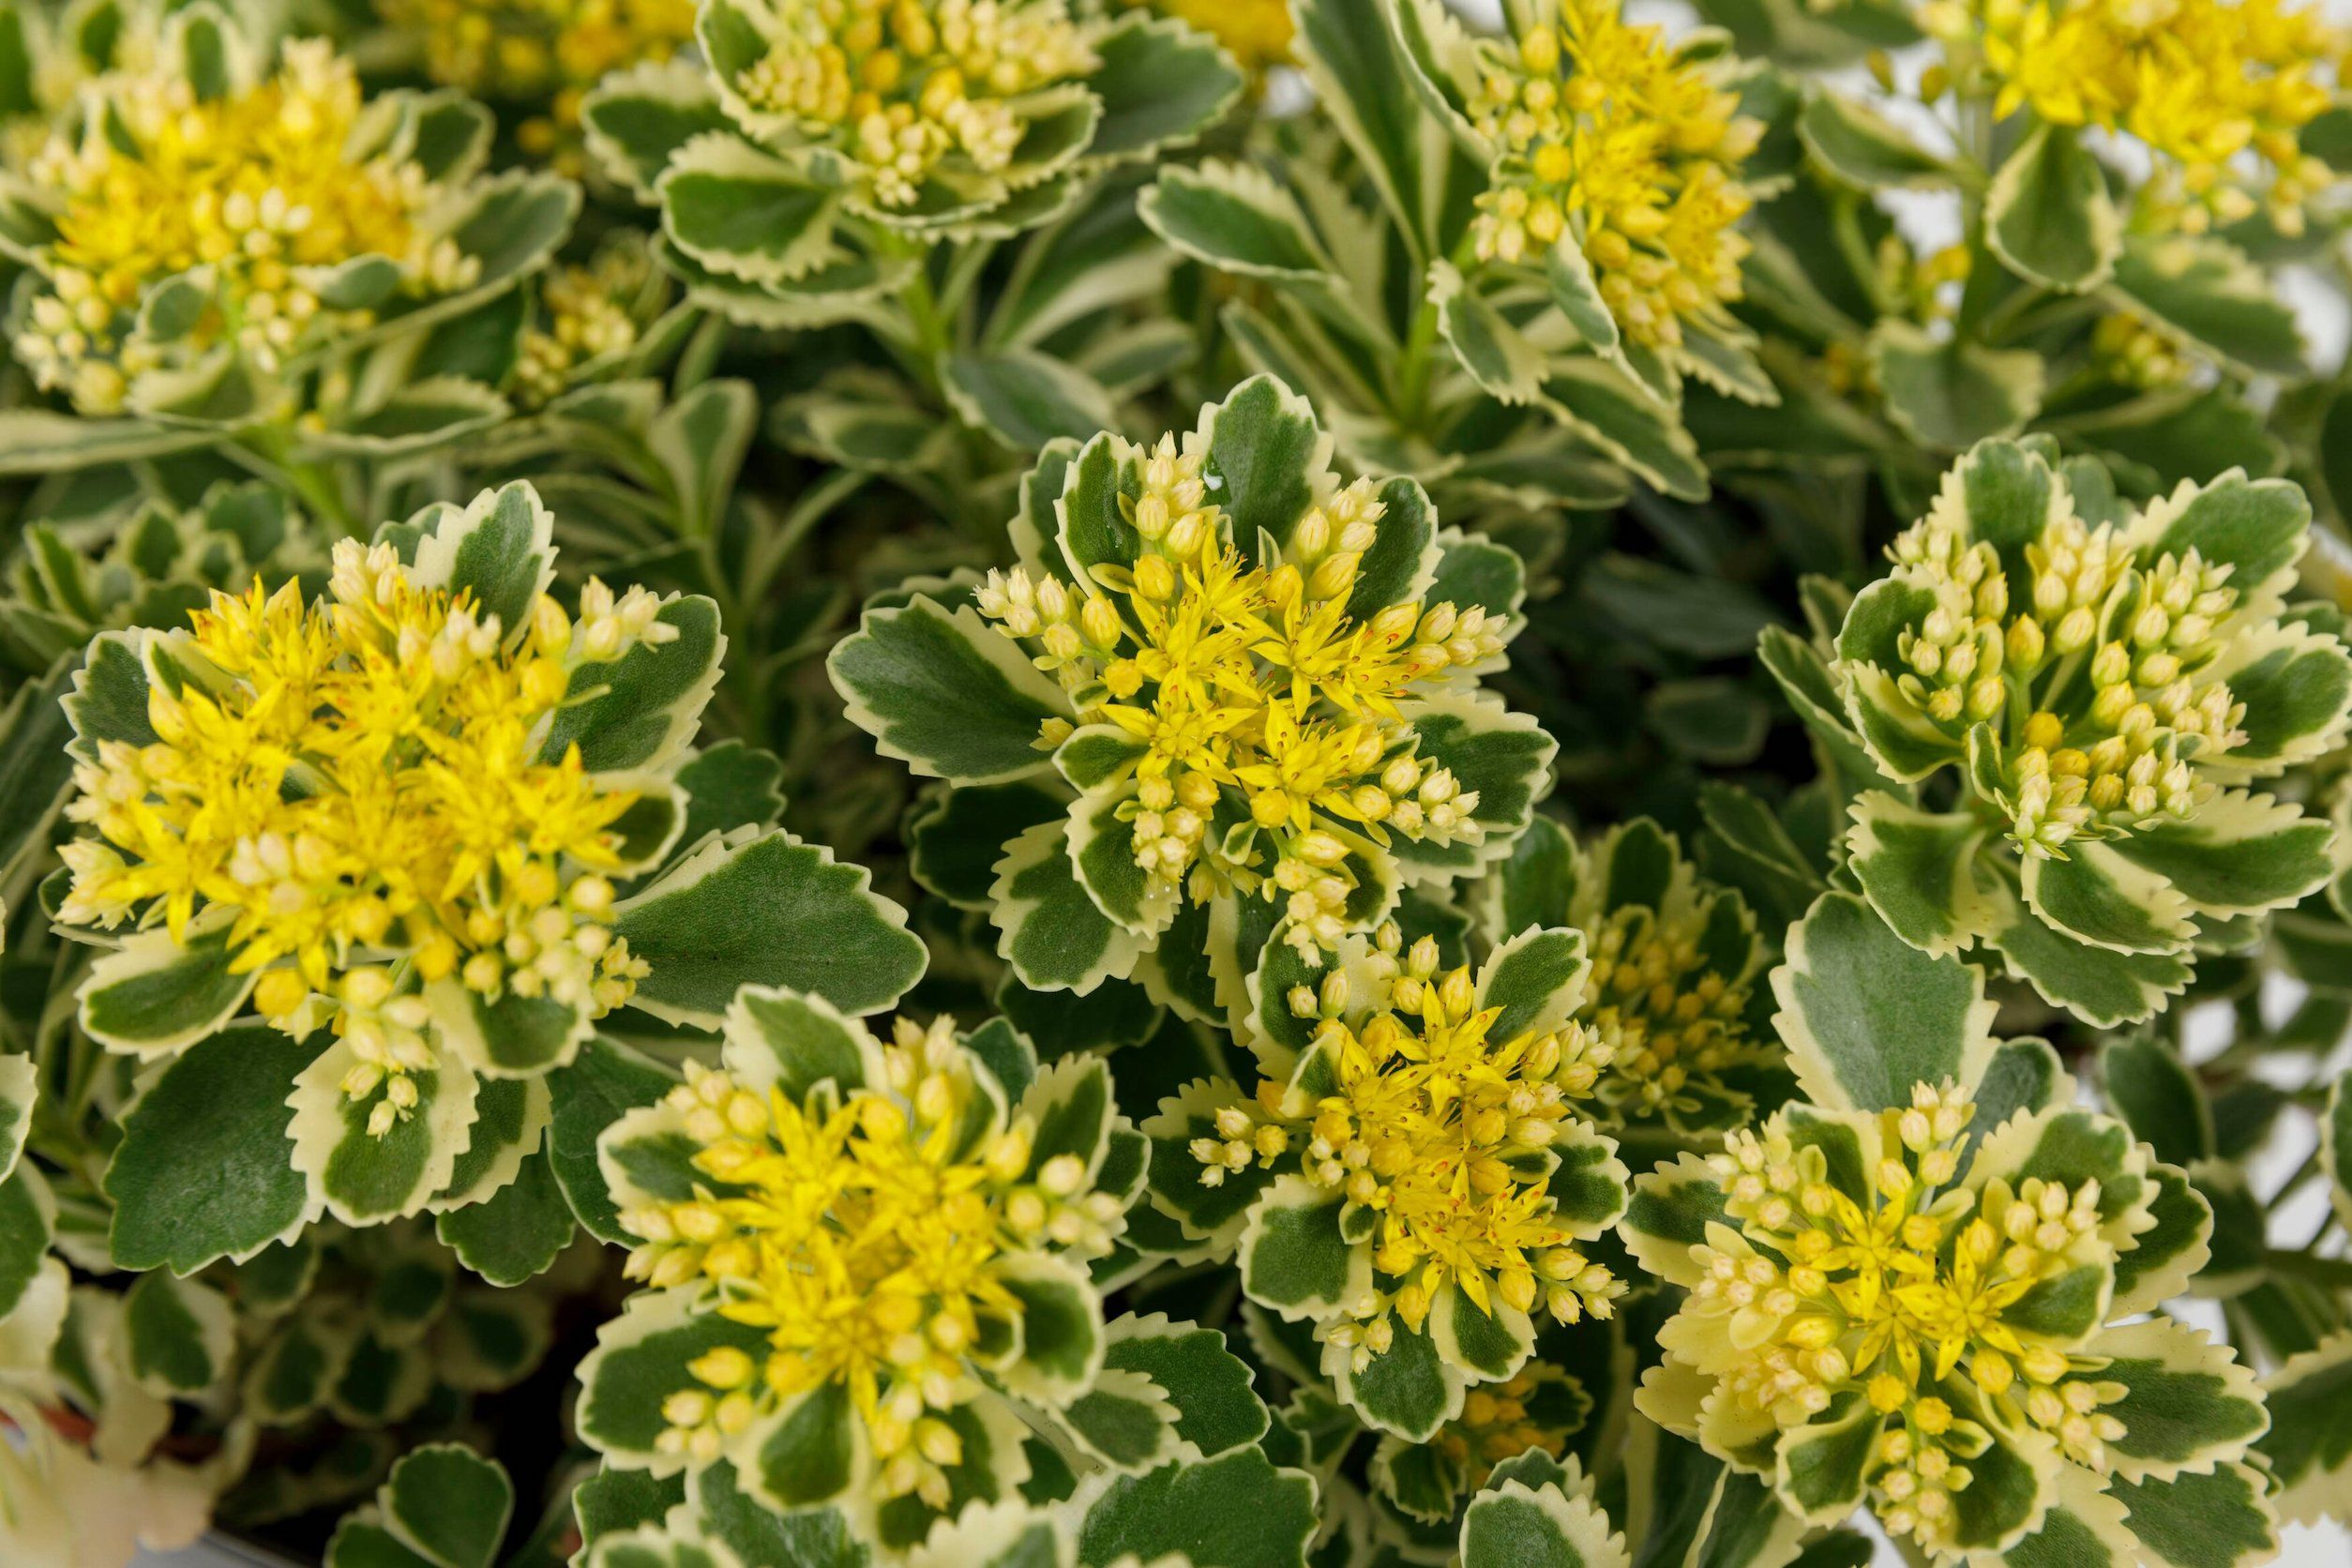 Chelsea Flower Show: Sedum Atlantis wins Plant of the Year 2019